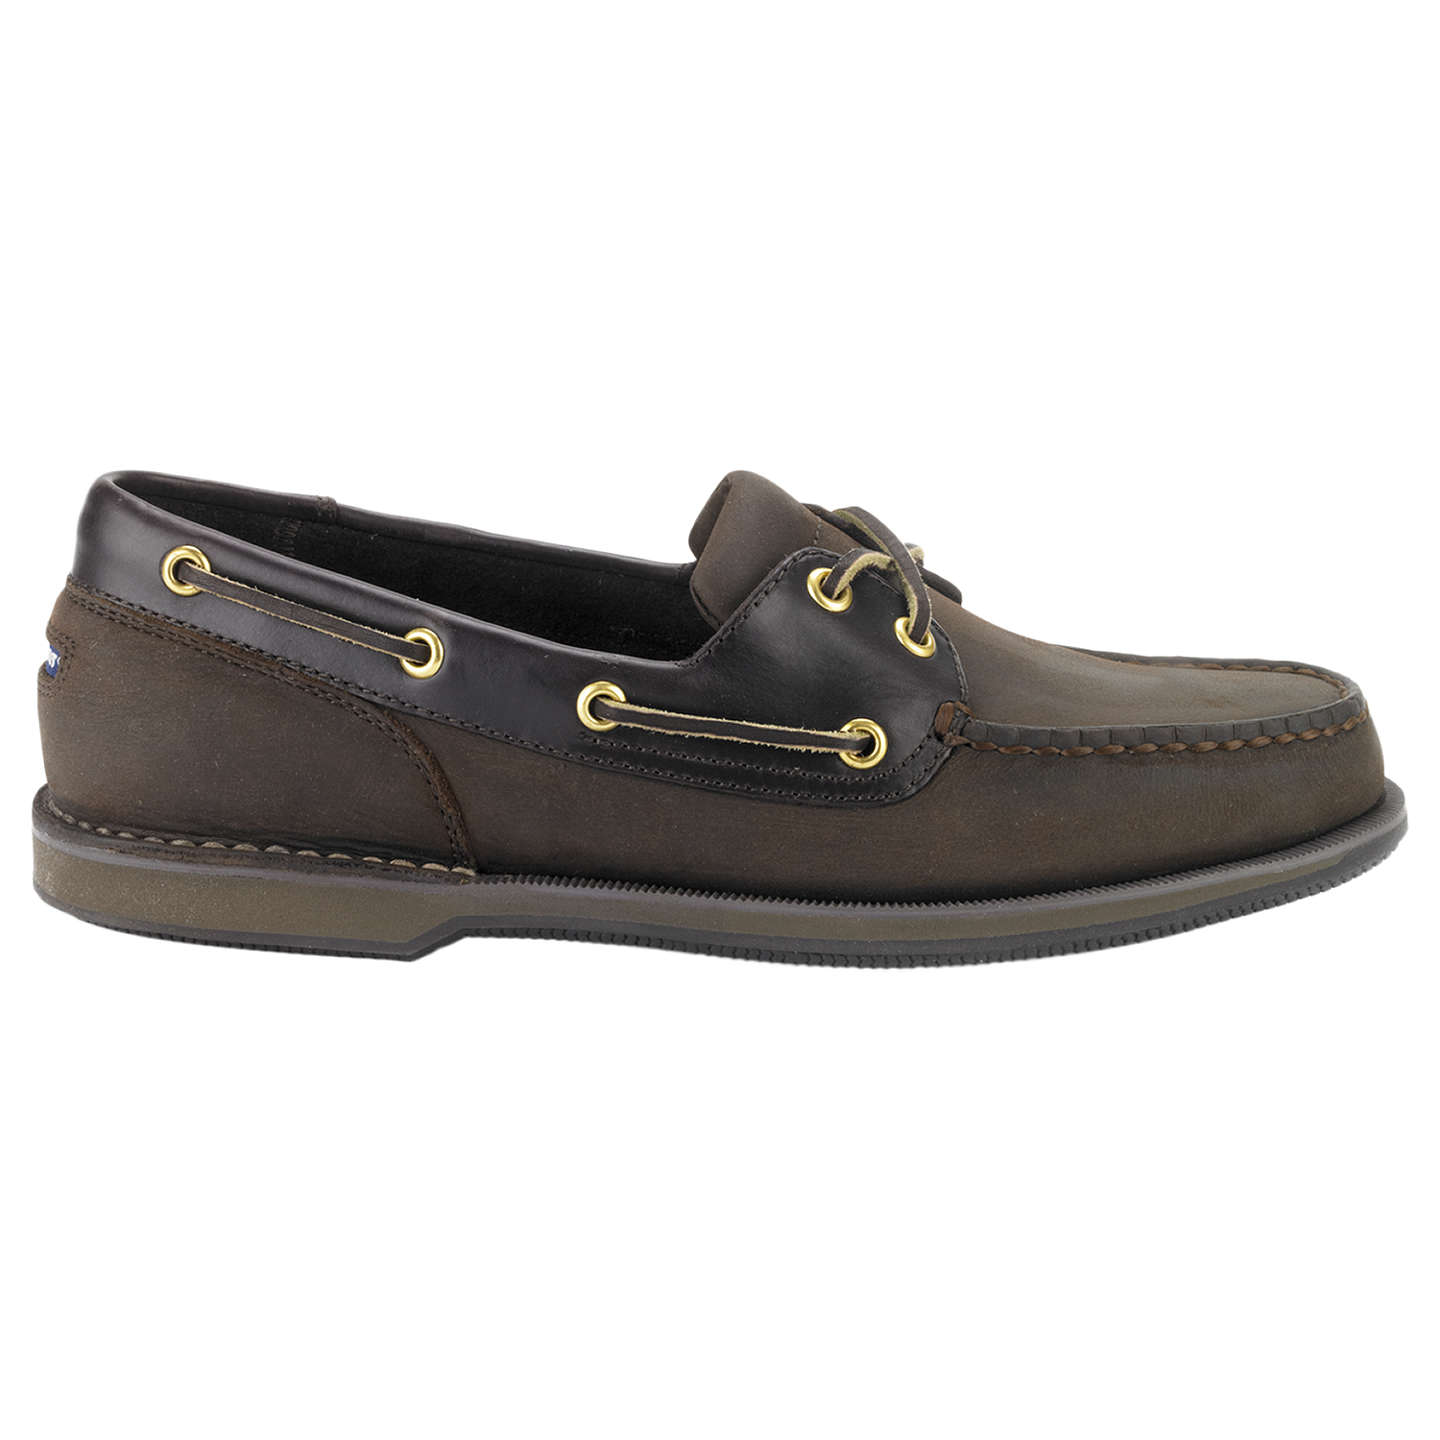 BuyRockport Perth Leather Boat Shoes, Chocolate, 7 Online at johnlewis.com  ...